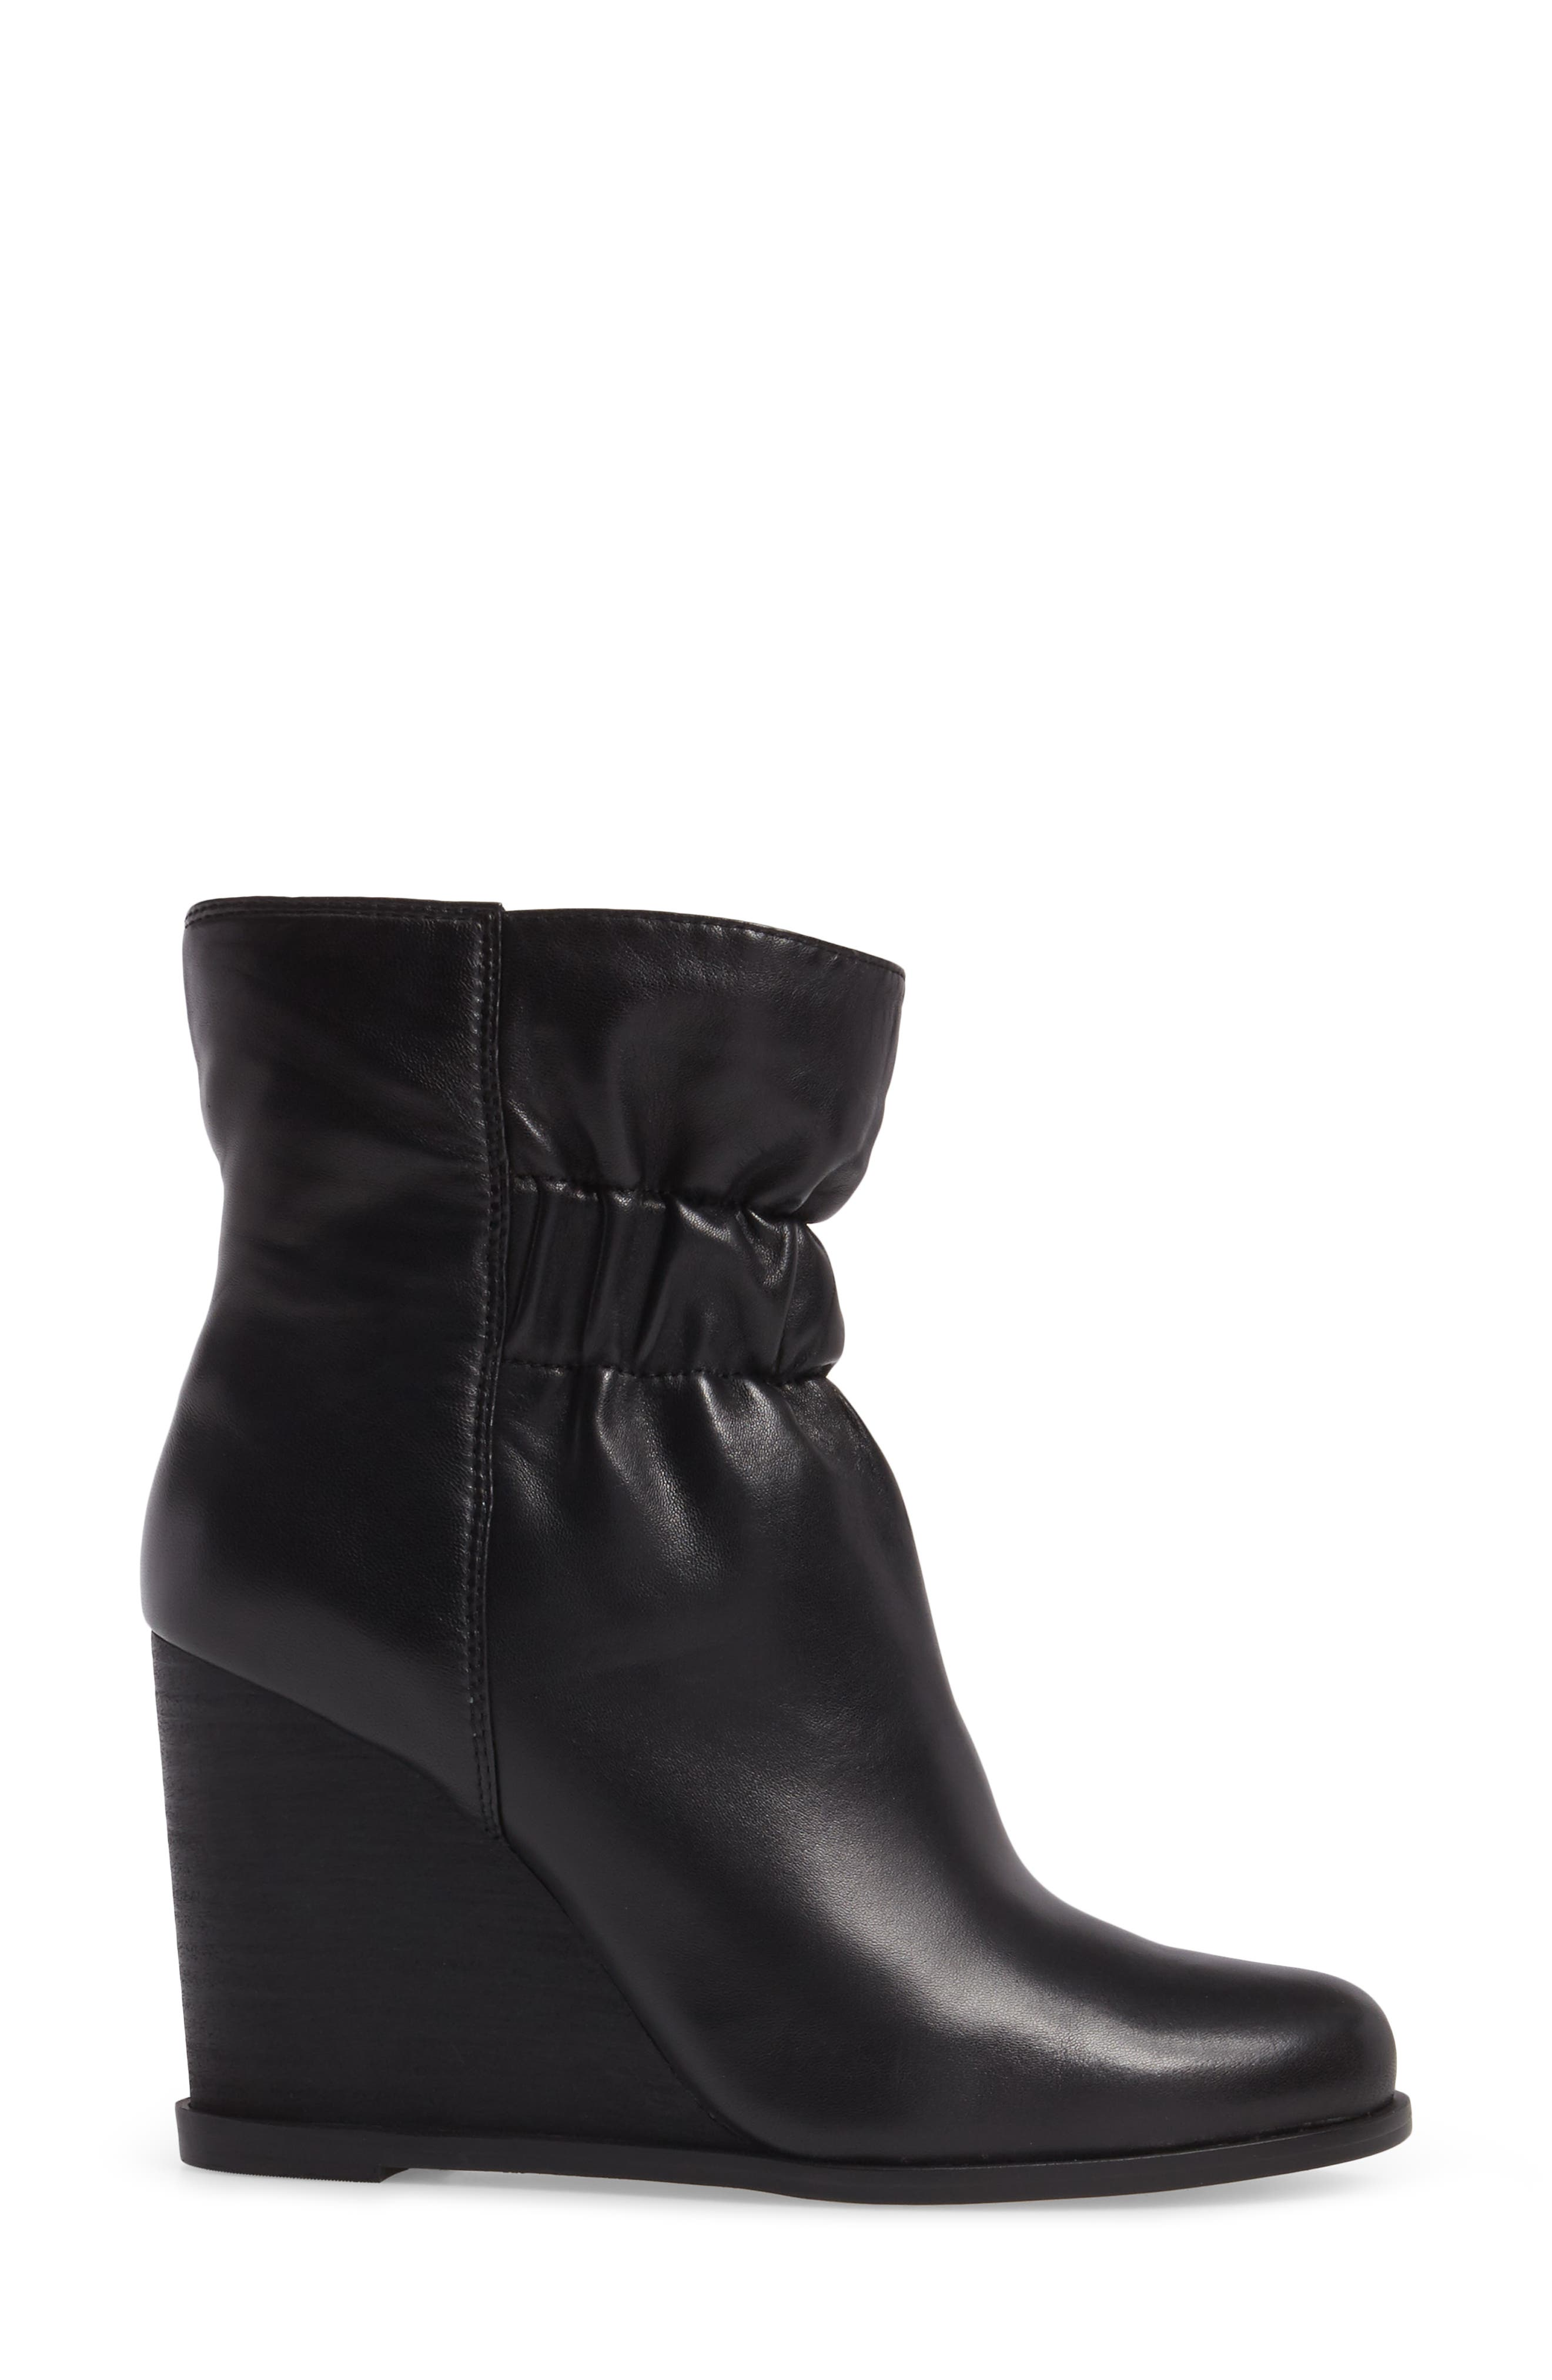 Rebecca Wedge Bootie,                             Alternate thumbnail 3, color,                             002